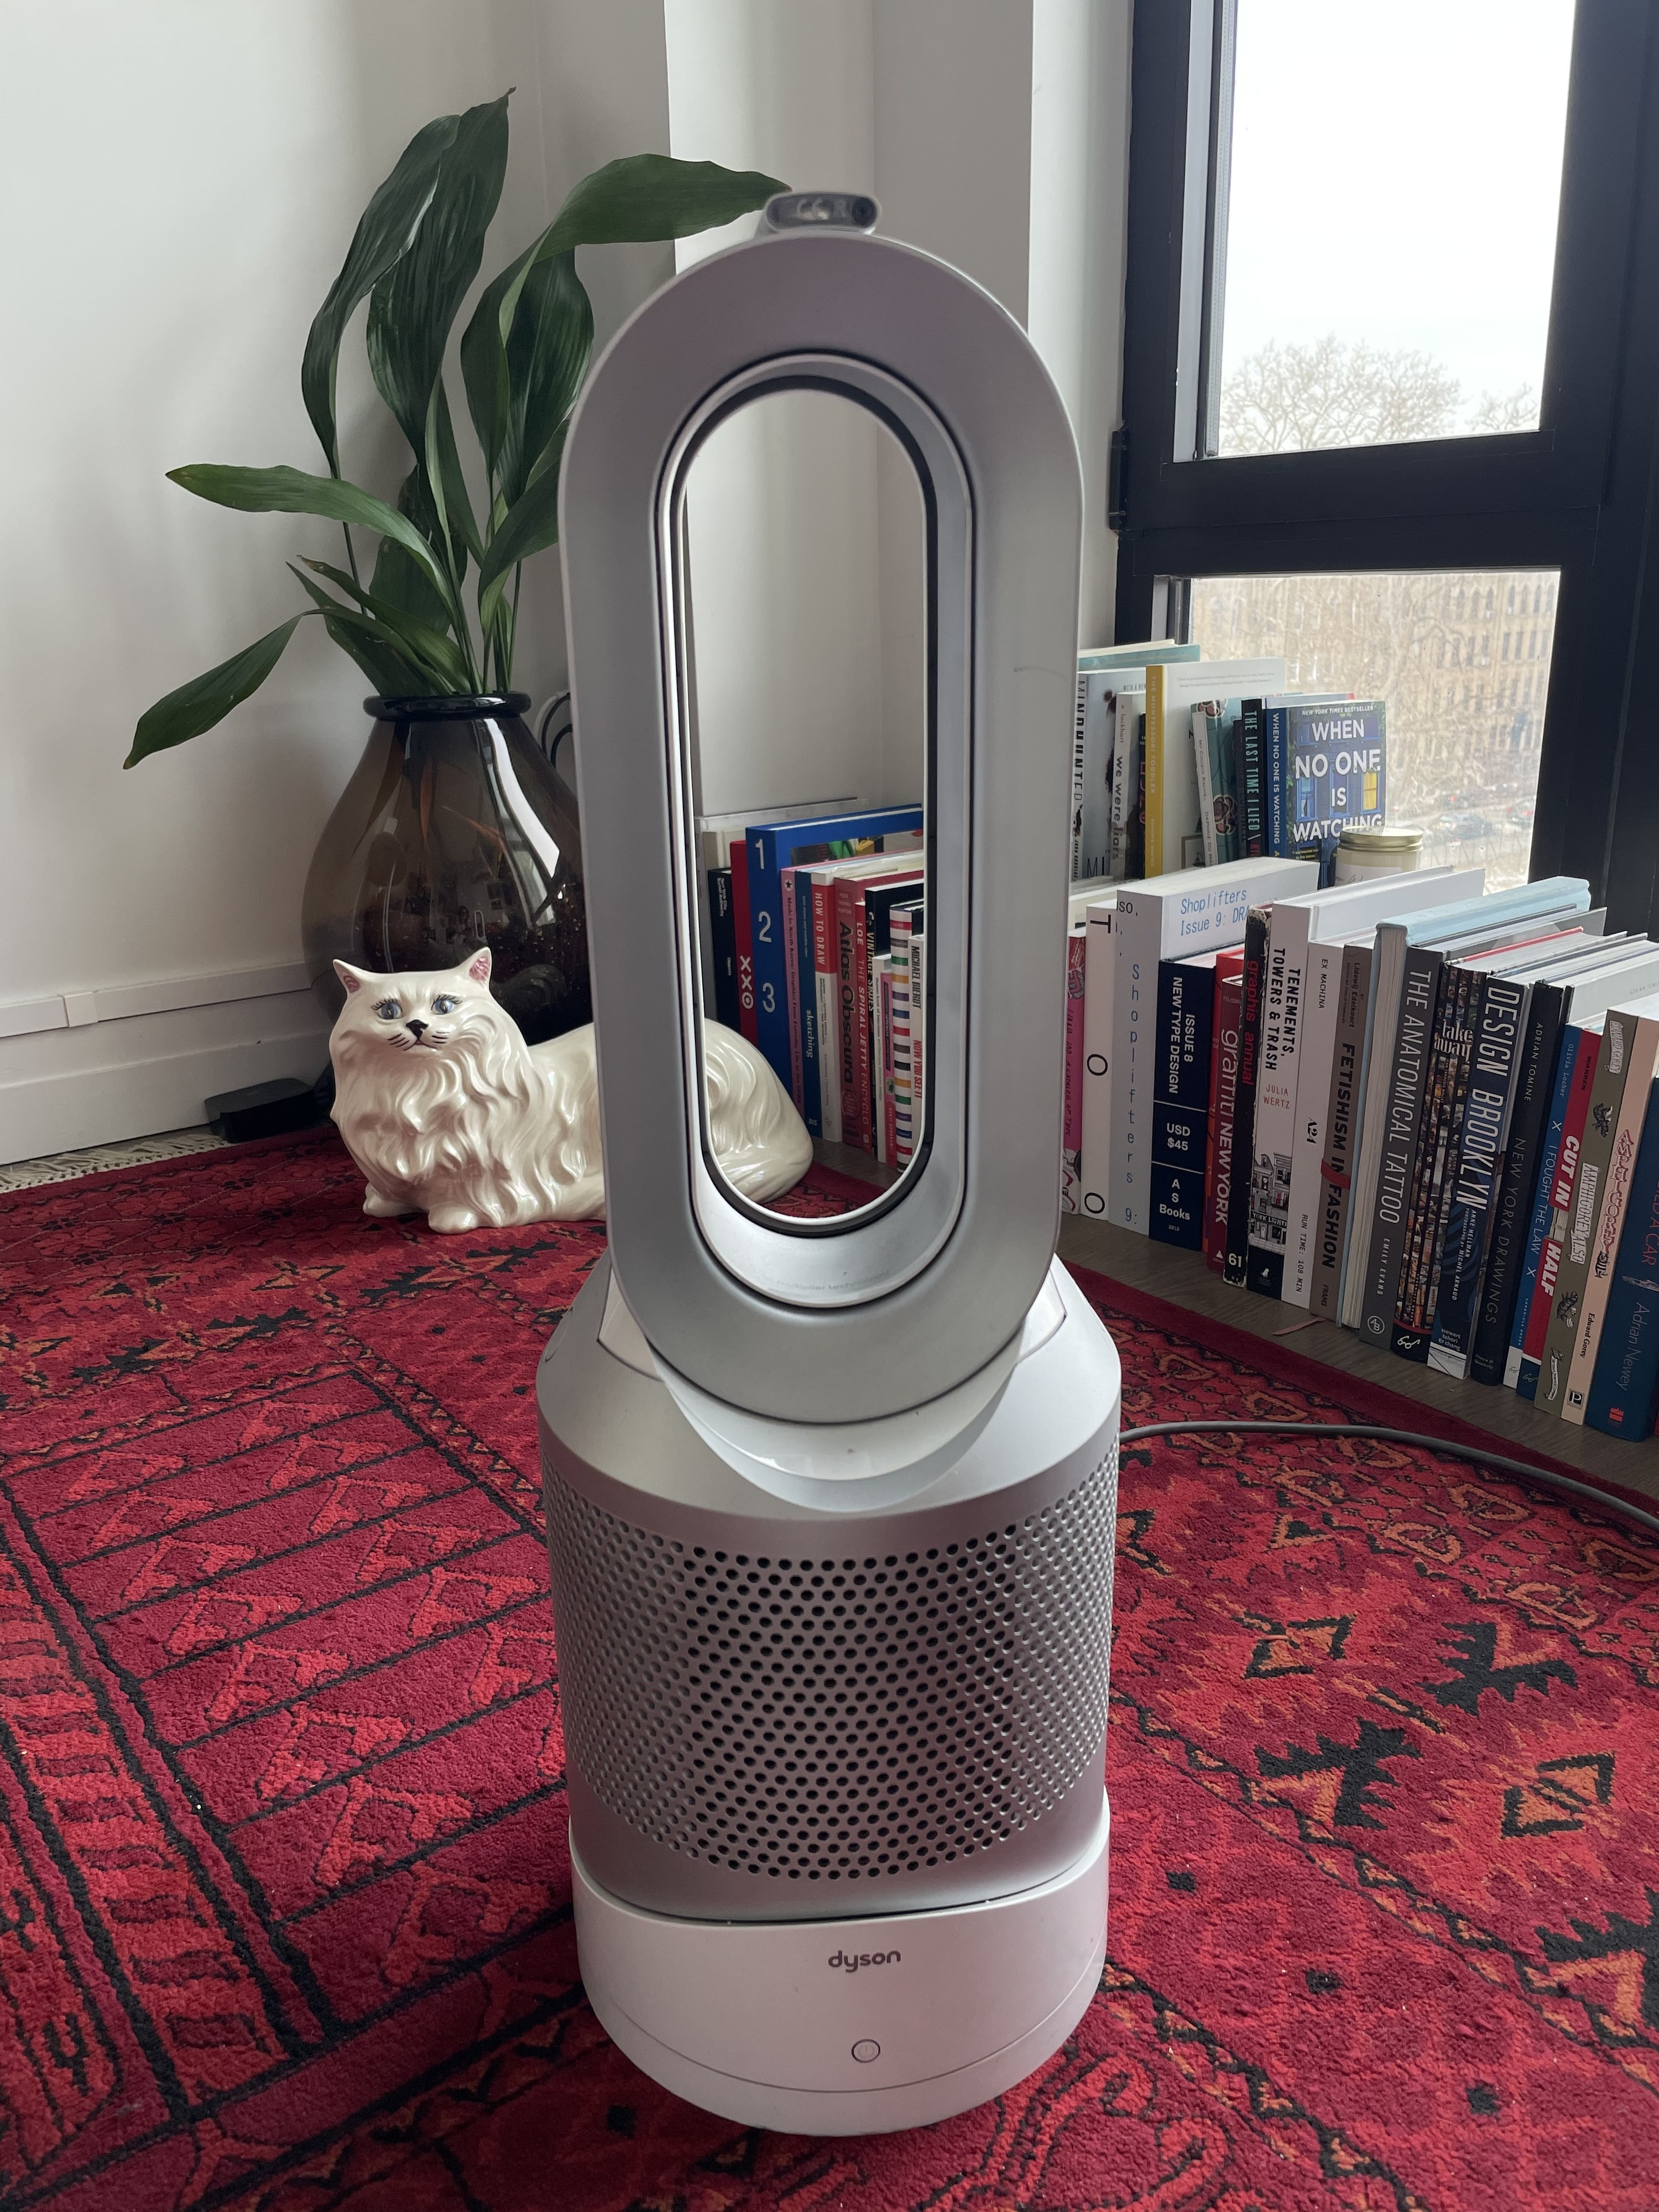 Mal's Dyson in her living room. It is oval shaped with a small footprint and plugged into the wall.